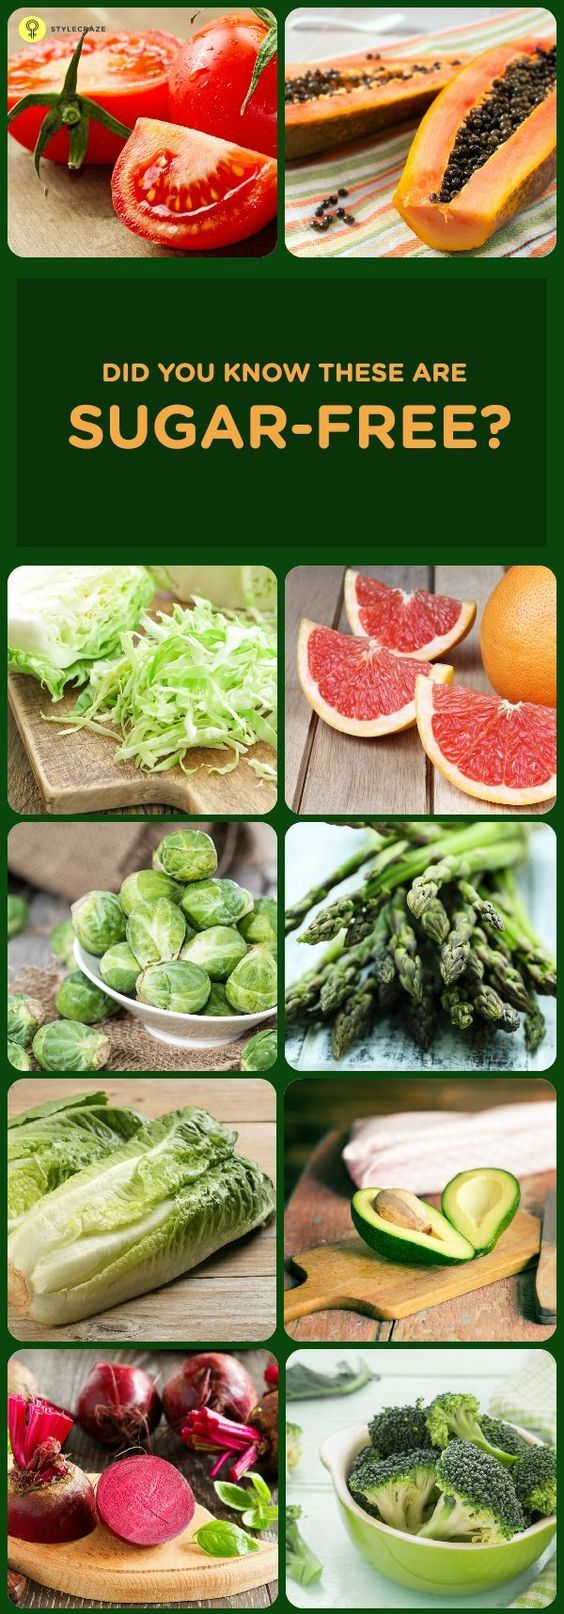 Can You Get Diabetes From Fruit Sugar Does The Thought Of Diabetes Scare You Well You Just Don T Have To Worry At All Because Here S A List Of Suga Sugar Free Fruits Sugar Free Diet Healthy Detox